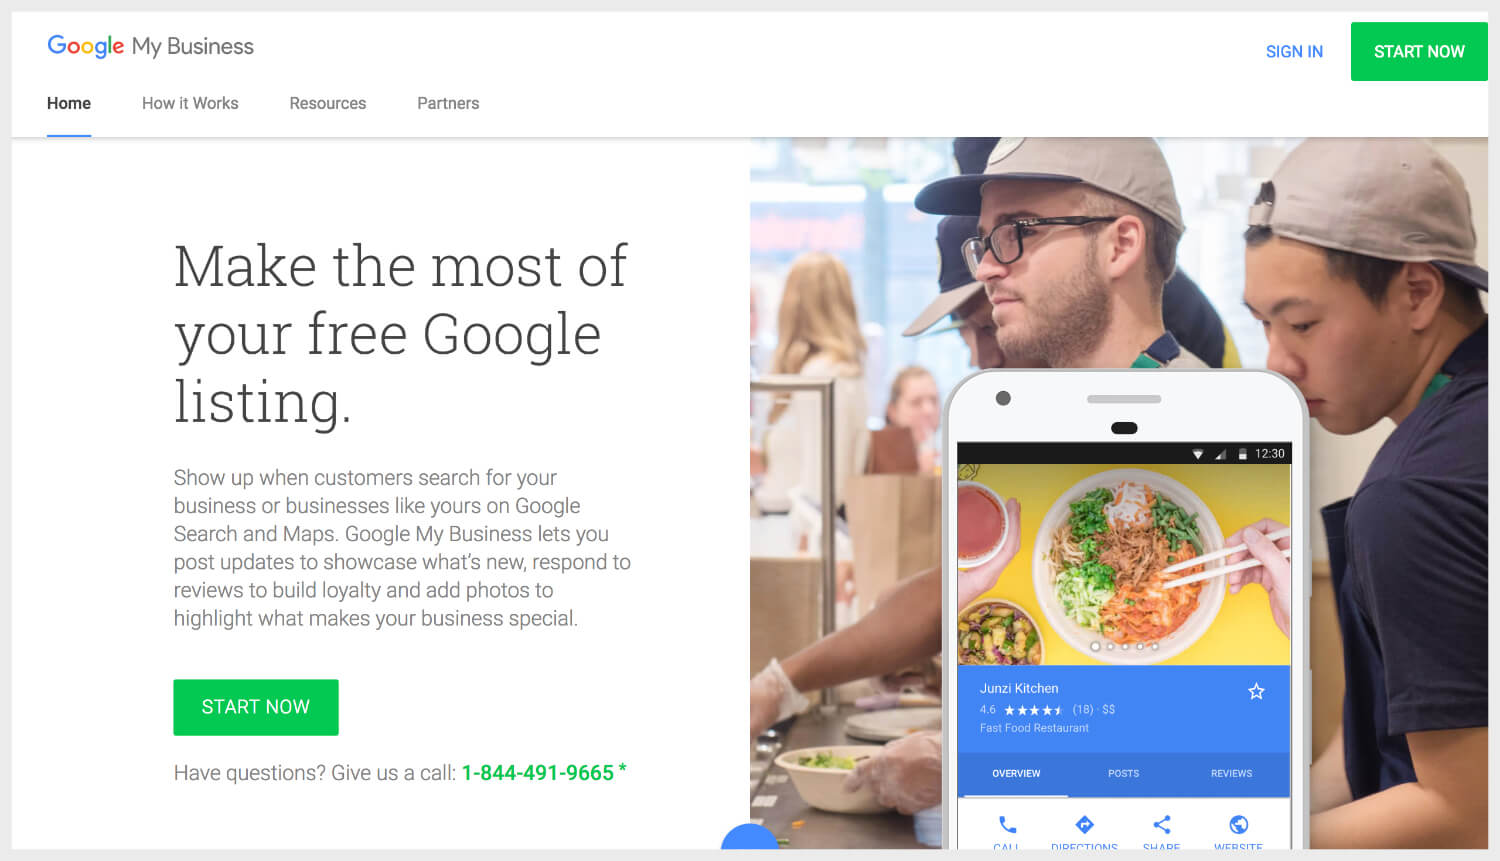 Google My Business' homepage